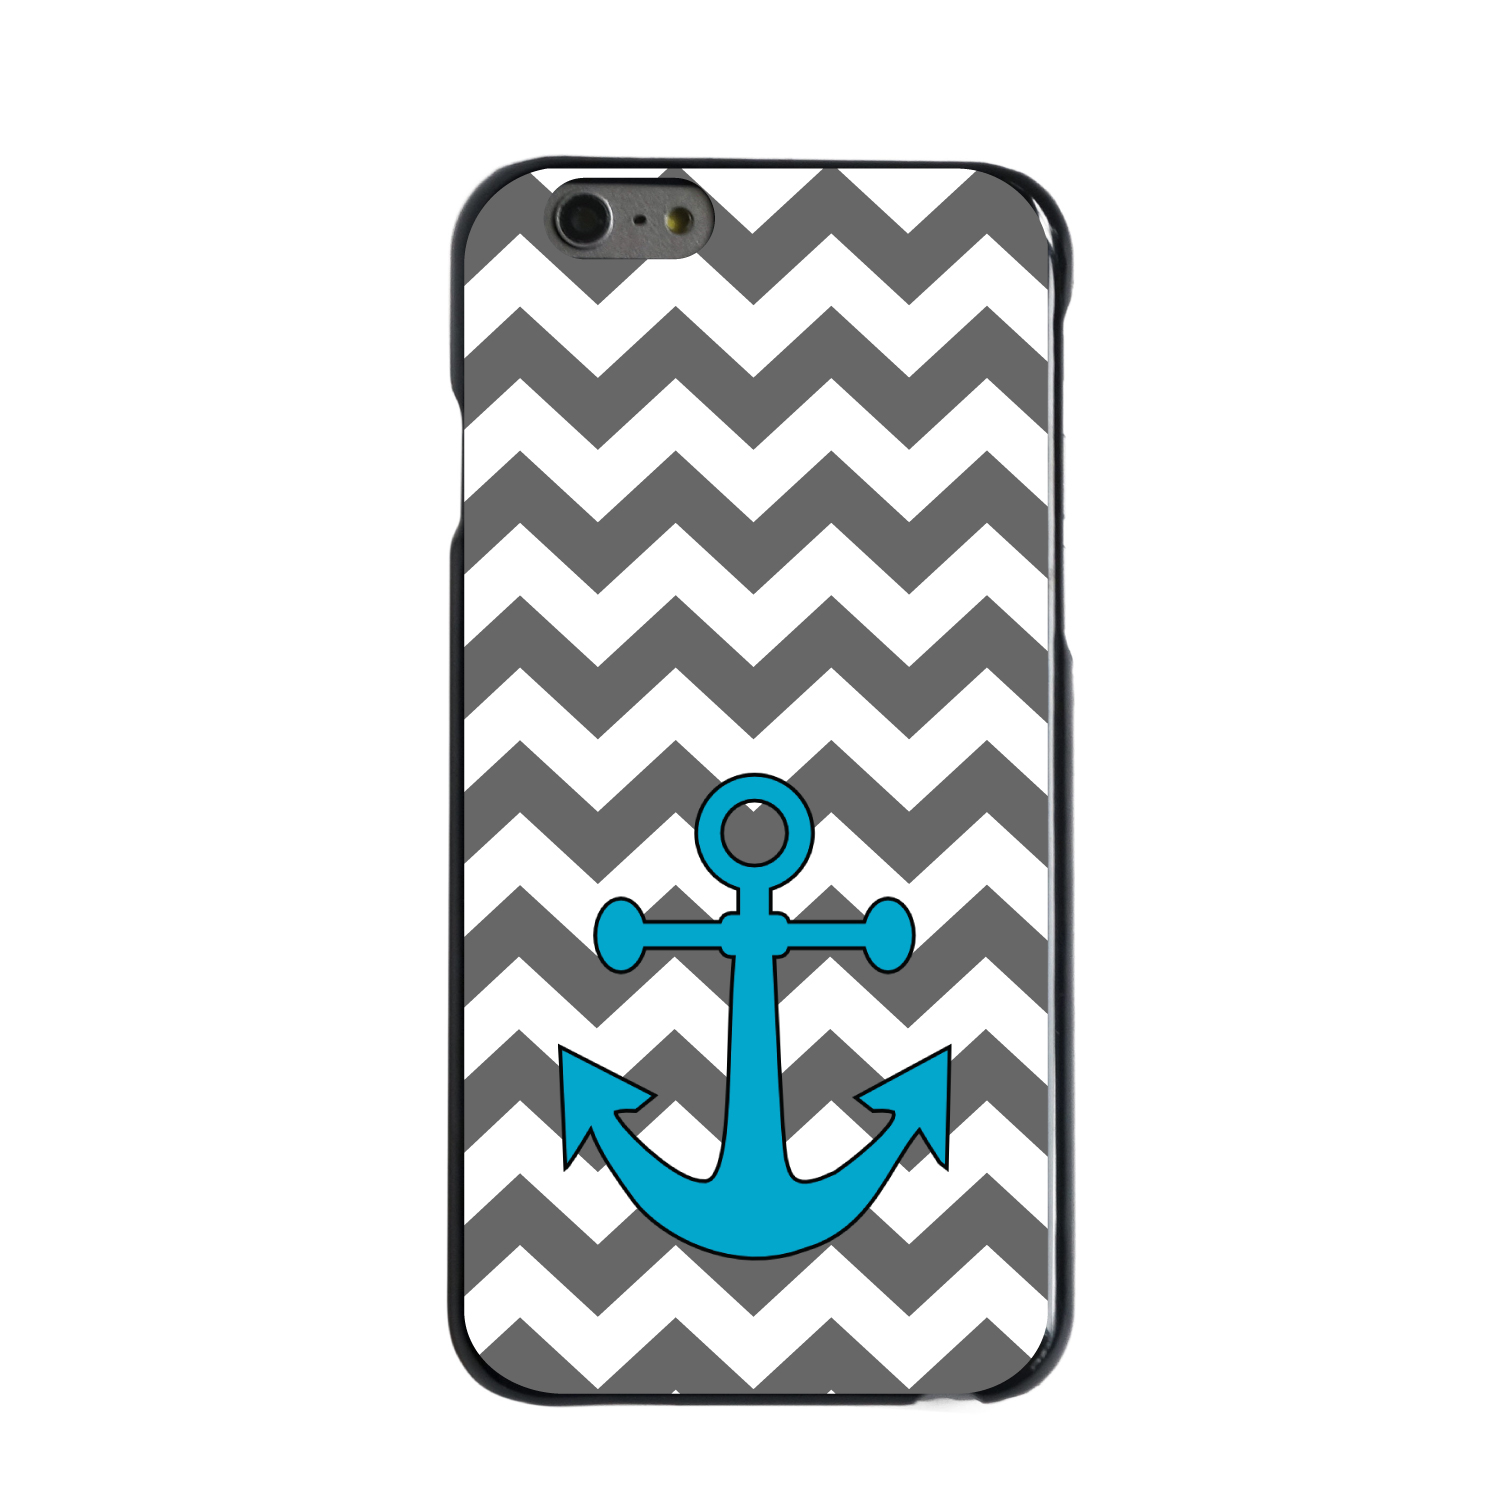 "CUSTOM Black Hard Plastic Snap-On Case for Apple iPhone 7 PLUS / 8 PLUS (5.5"" Screen) - Grey White Chevron Teal Anchor"